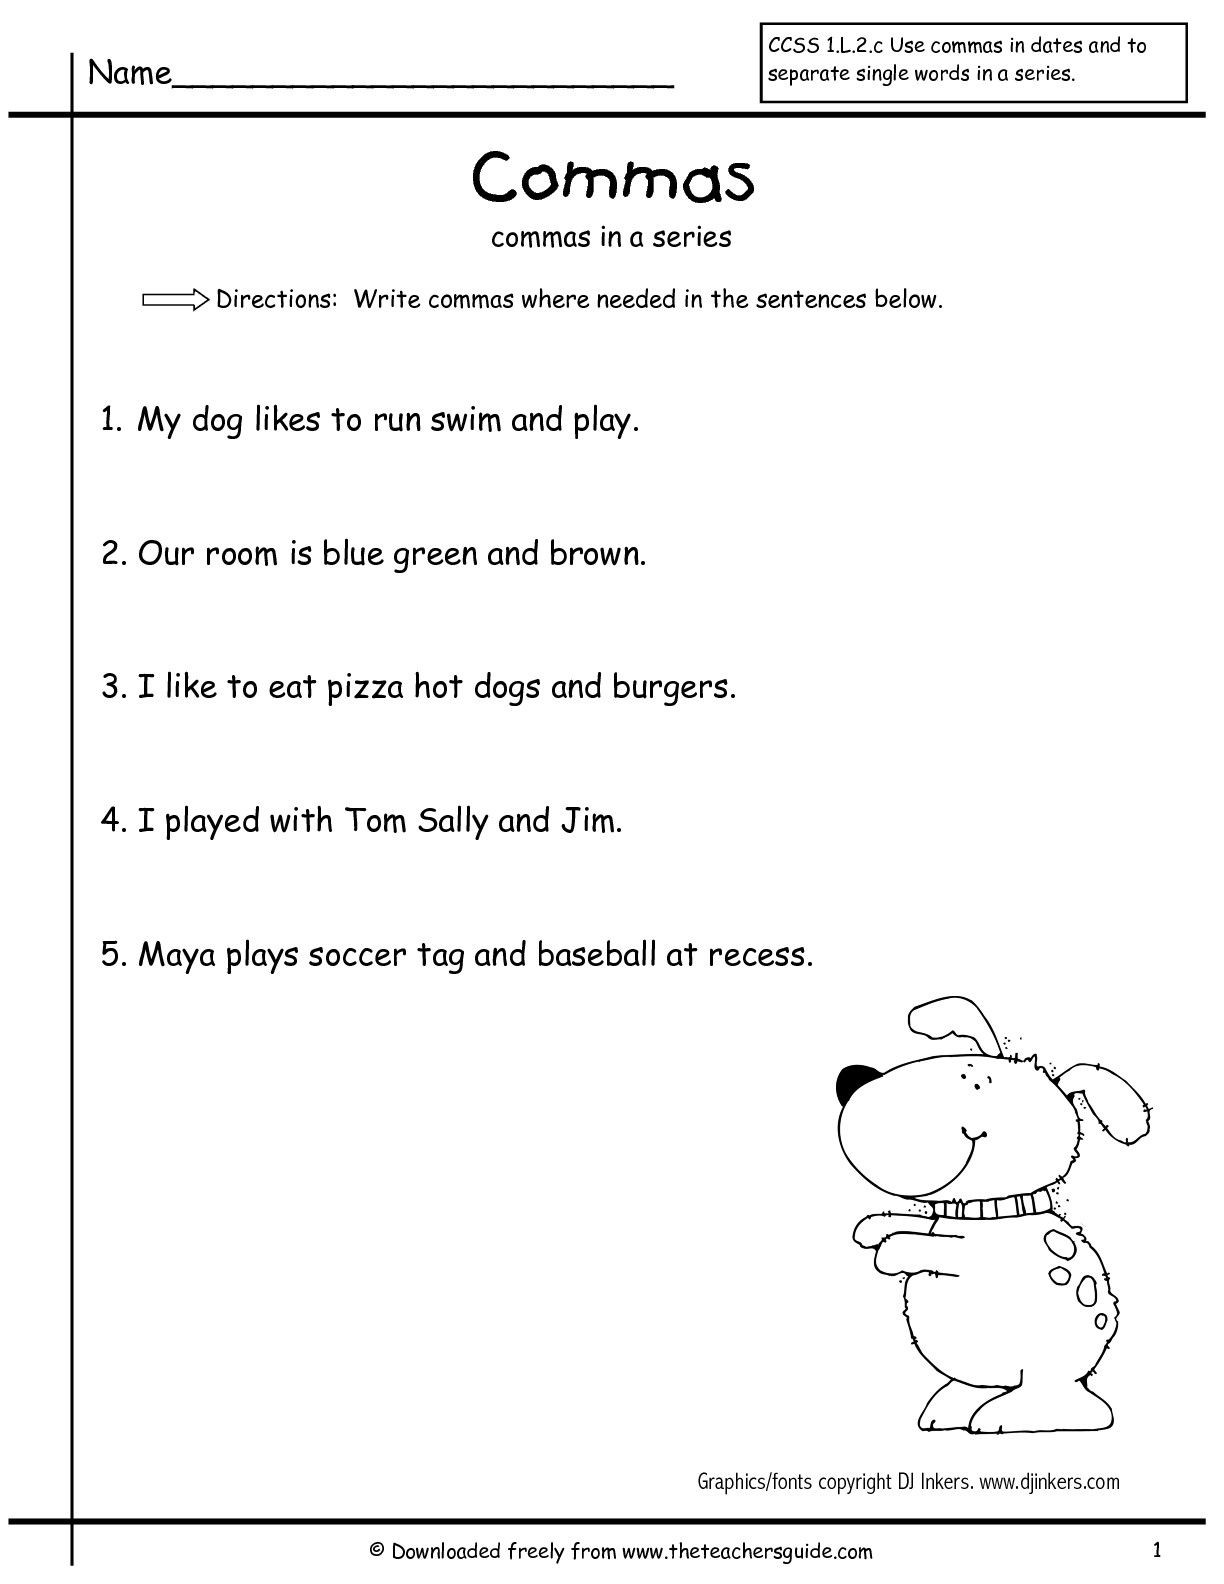 First Grade Punctuation Worksheets Masinseriesfirstgrade2 001 001 1224—1584